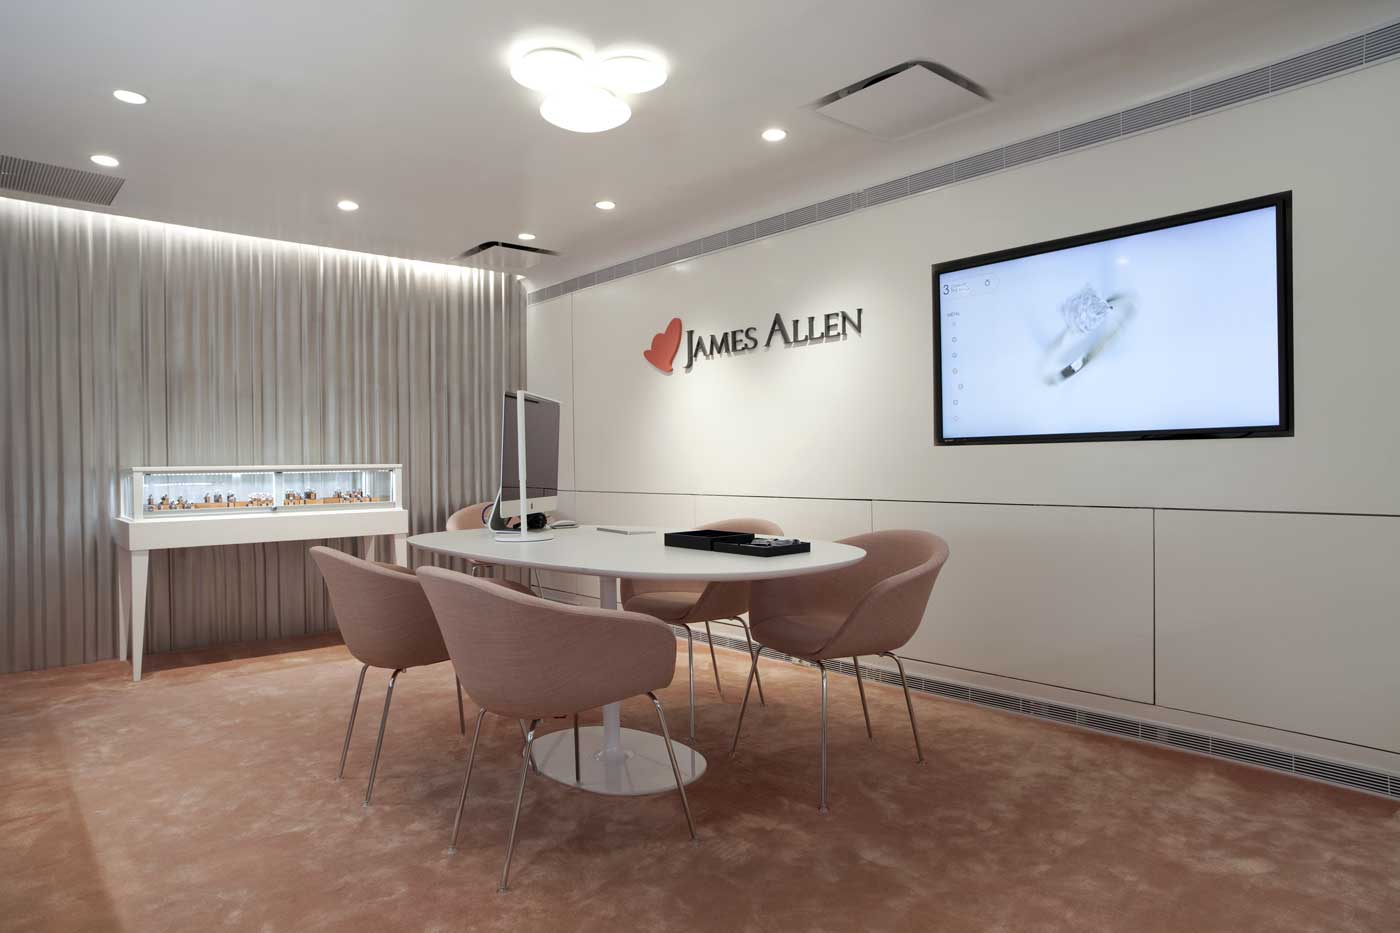 JAMES ALLEN JEWELRY SHOWROOM -